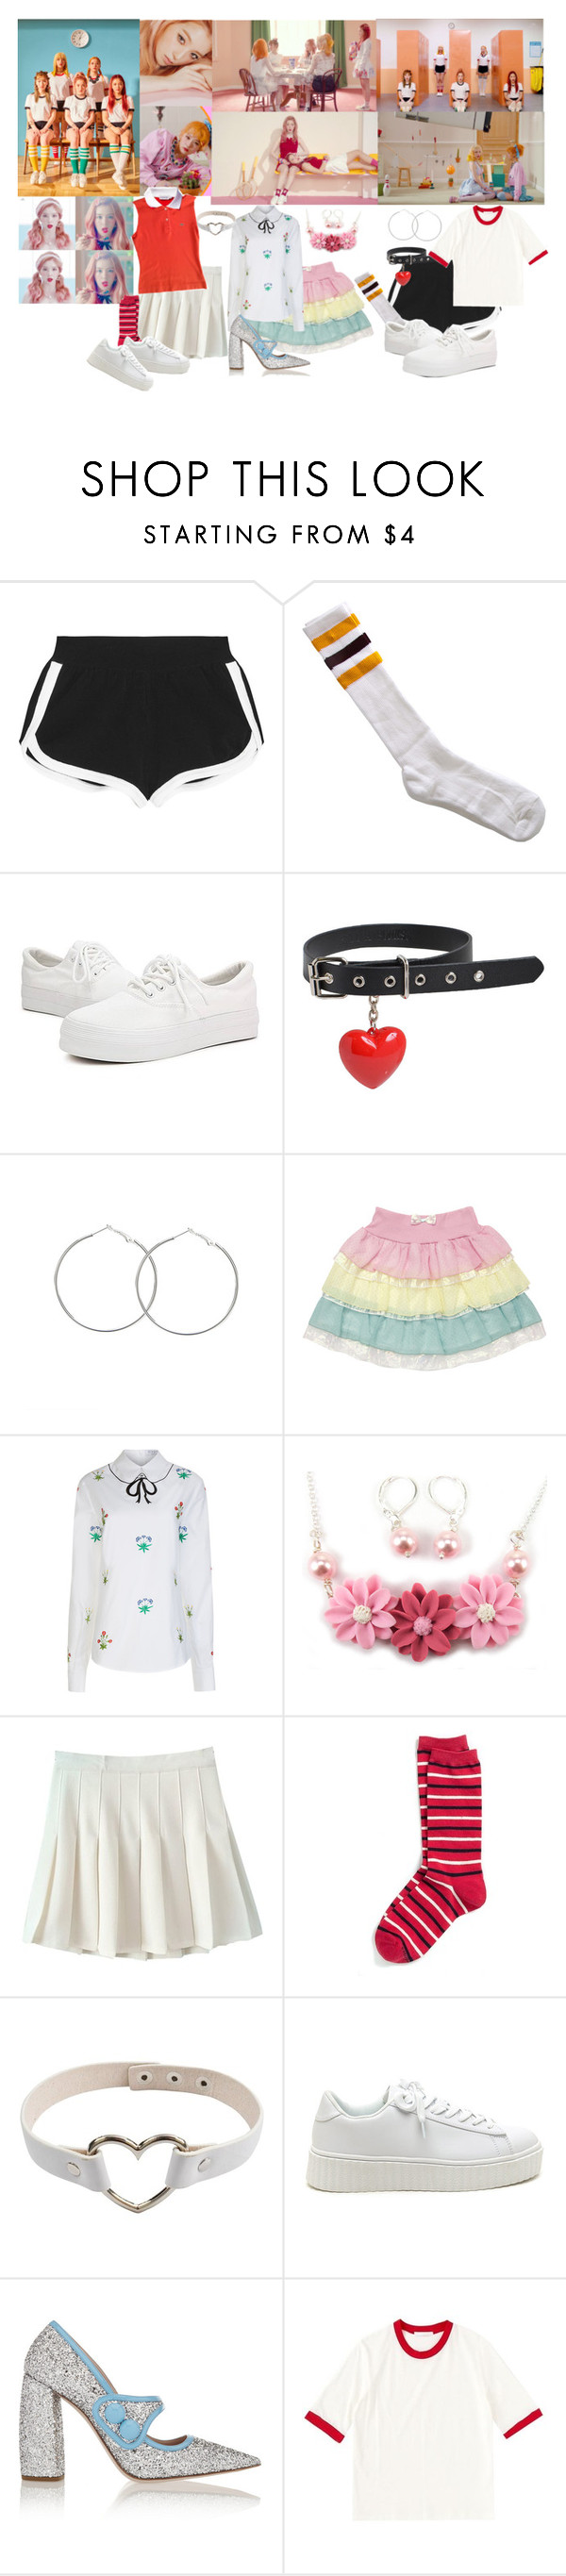 """""""Red Velvet - Russian Roulette MV """" by marissa-malik ❤ liked on Polyvore featuring Fendi, American Apparel, VIVETTA, Tommy Hilfiger and Miu Miu"""